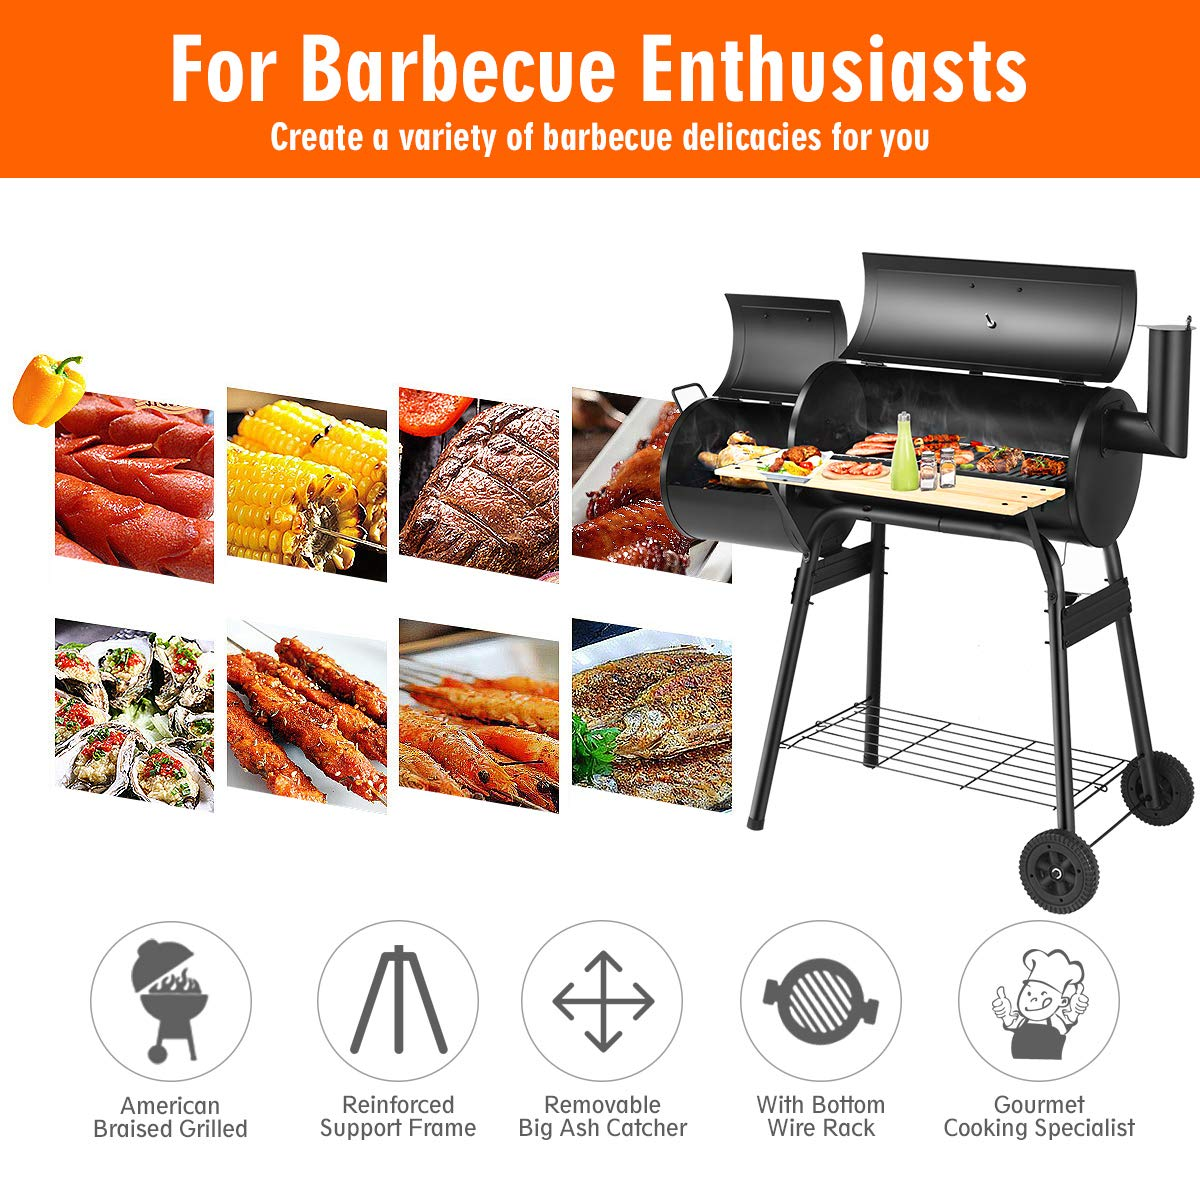 Giantex BBQ Grill Charcoal Barbecue Grill Outdoor Pit Patio Backyard Home Meat Cooker Smoker with Offset Smoker by Giantex (Image #7)